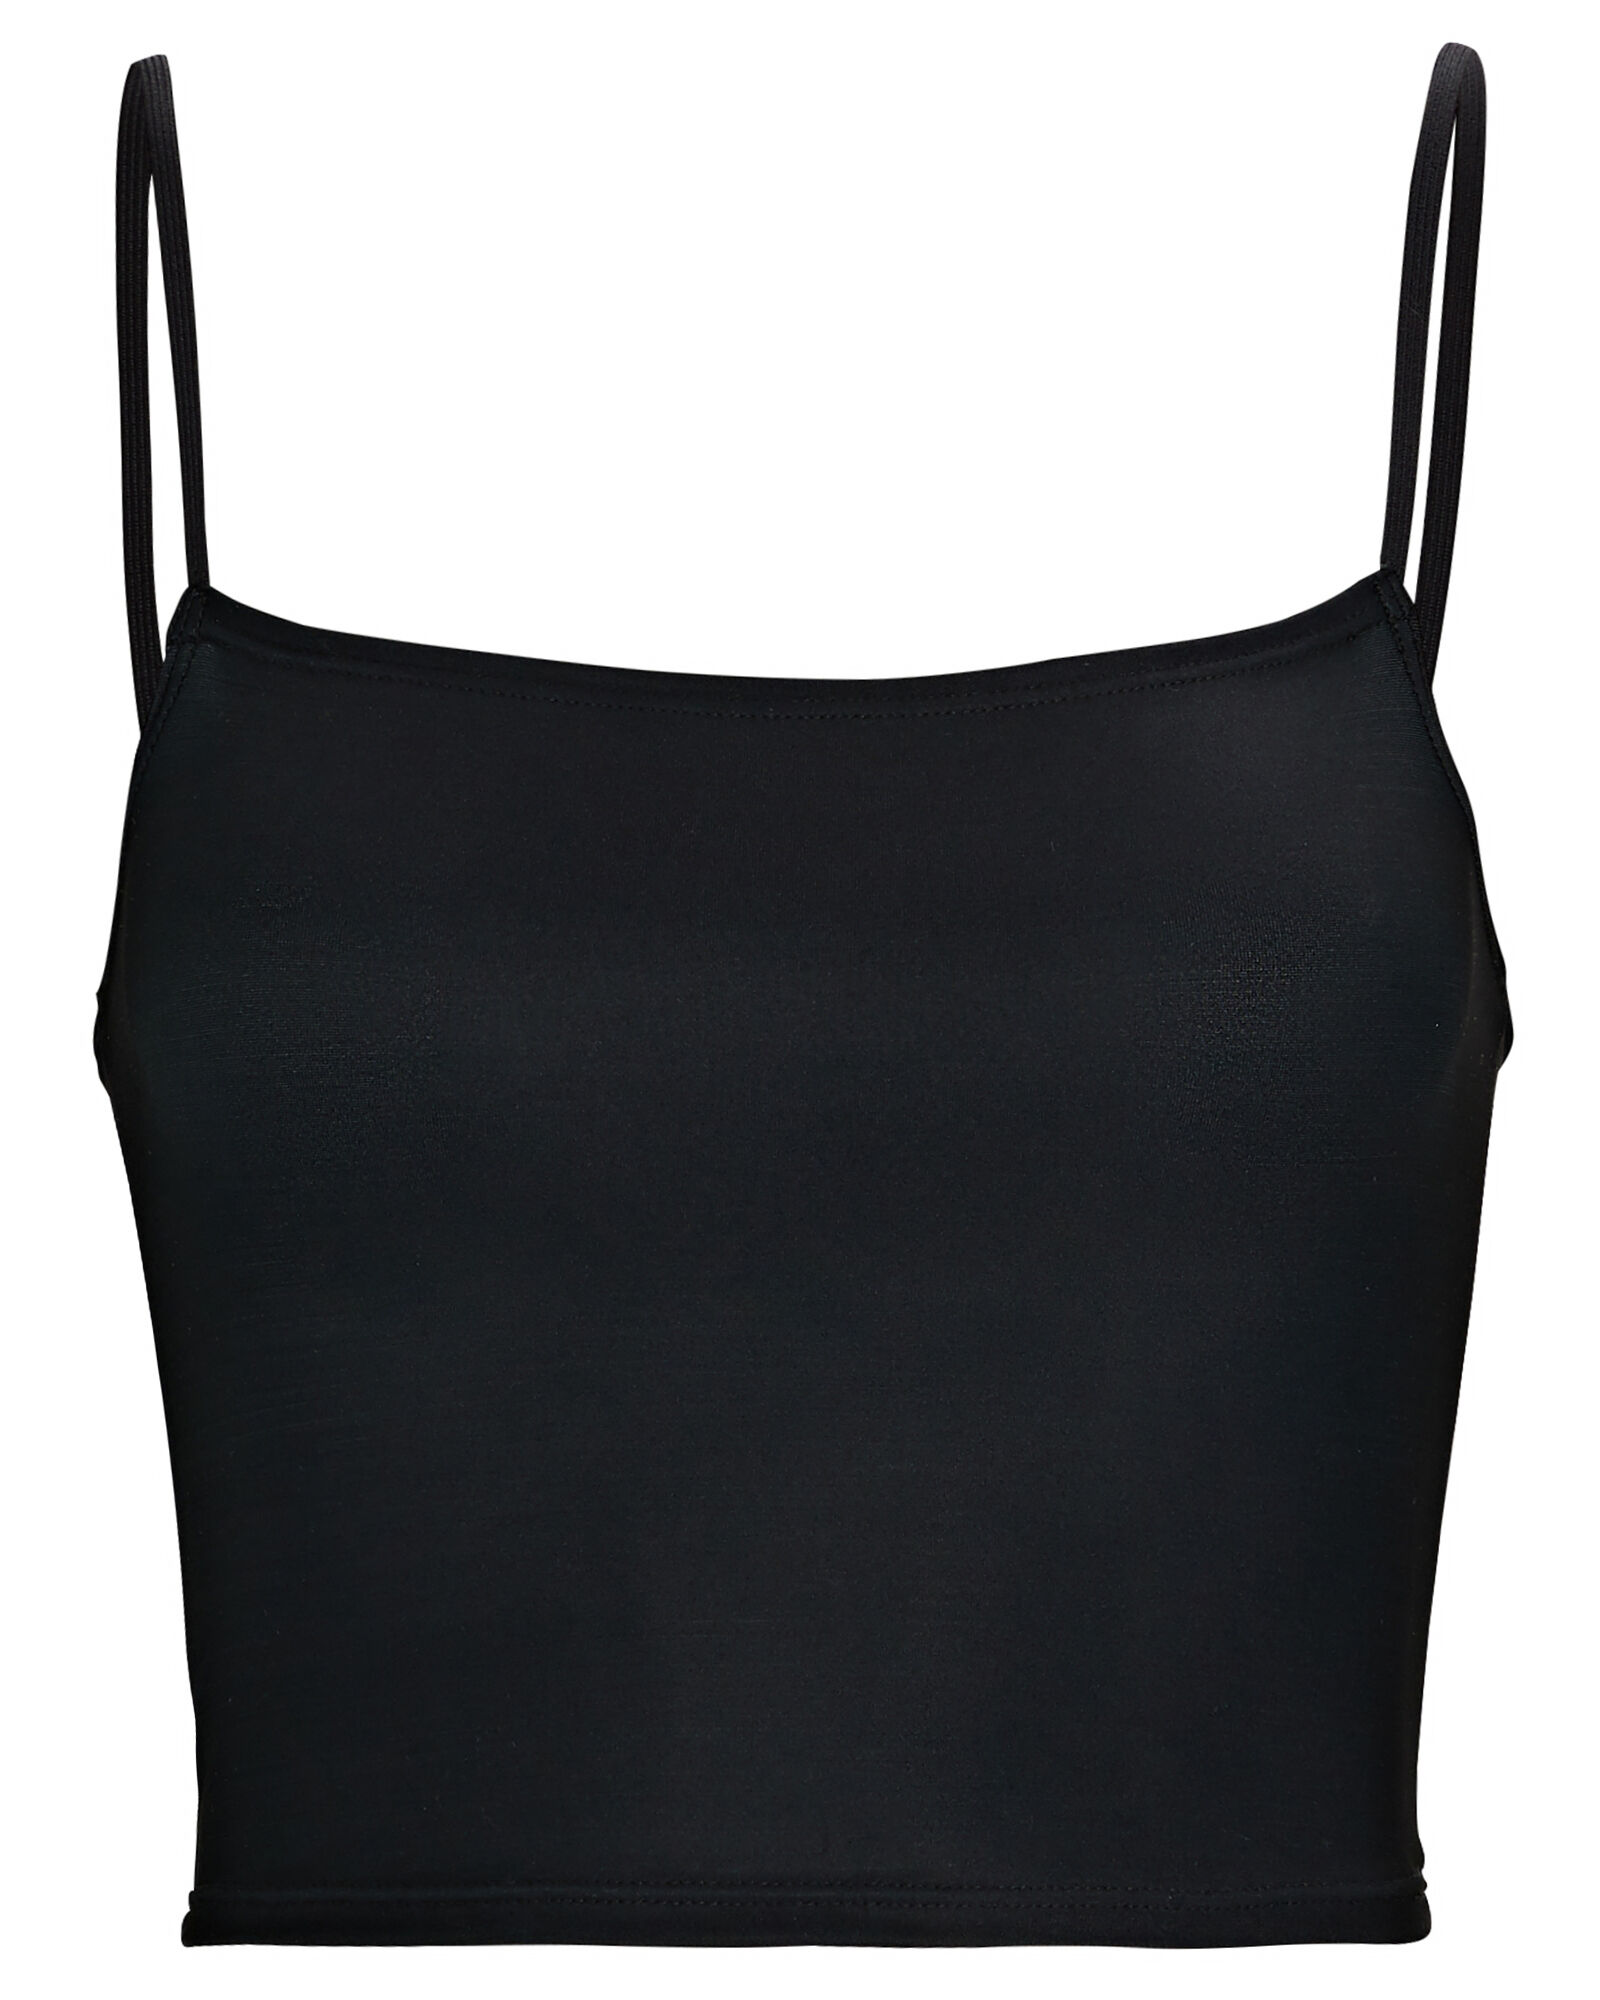 Second Skin Cropped Camisole, BLACK, hi-res